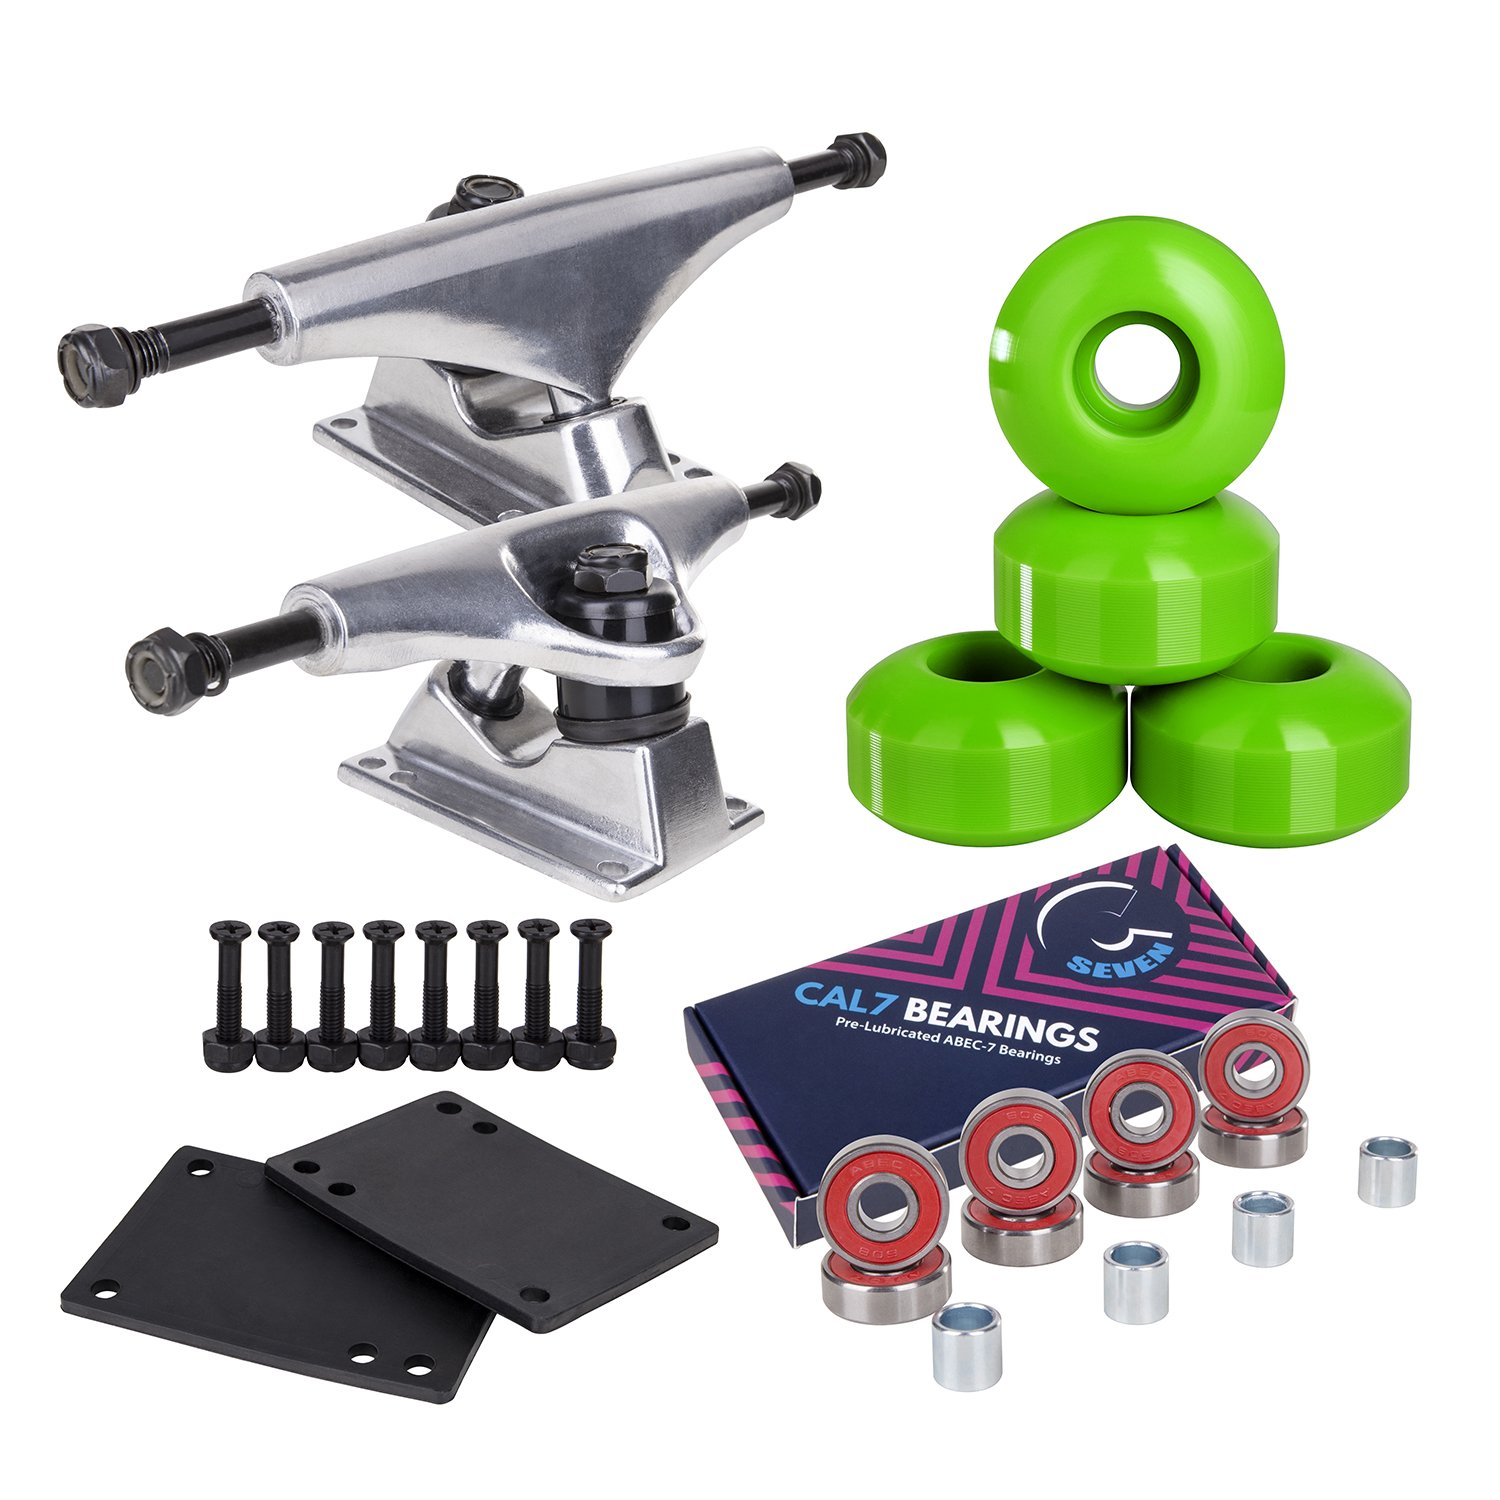 Cal 7 Skateboard Package Combo with 5 Inch / 129 Millimeter Trucks, 52mm 99A Wheels, Complete Set of Bearings and Steel Hardware (Silver Truck + Green Wheels) by Cal 7